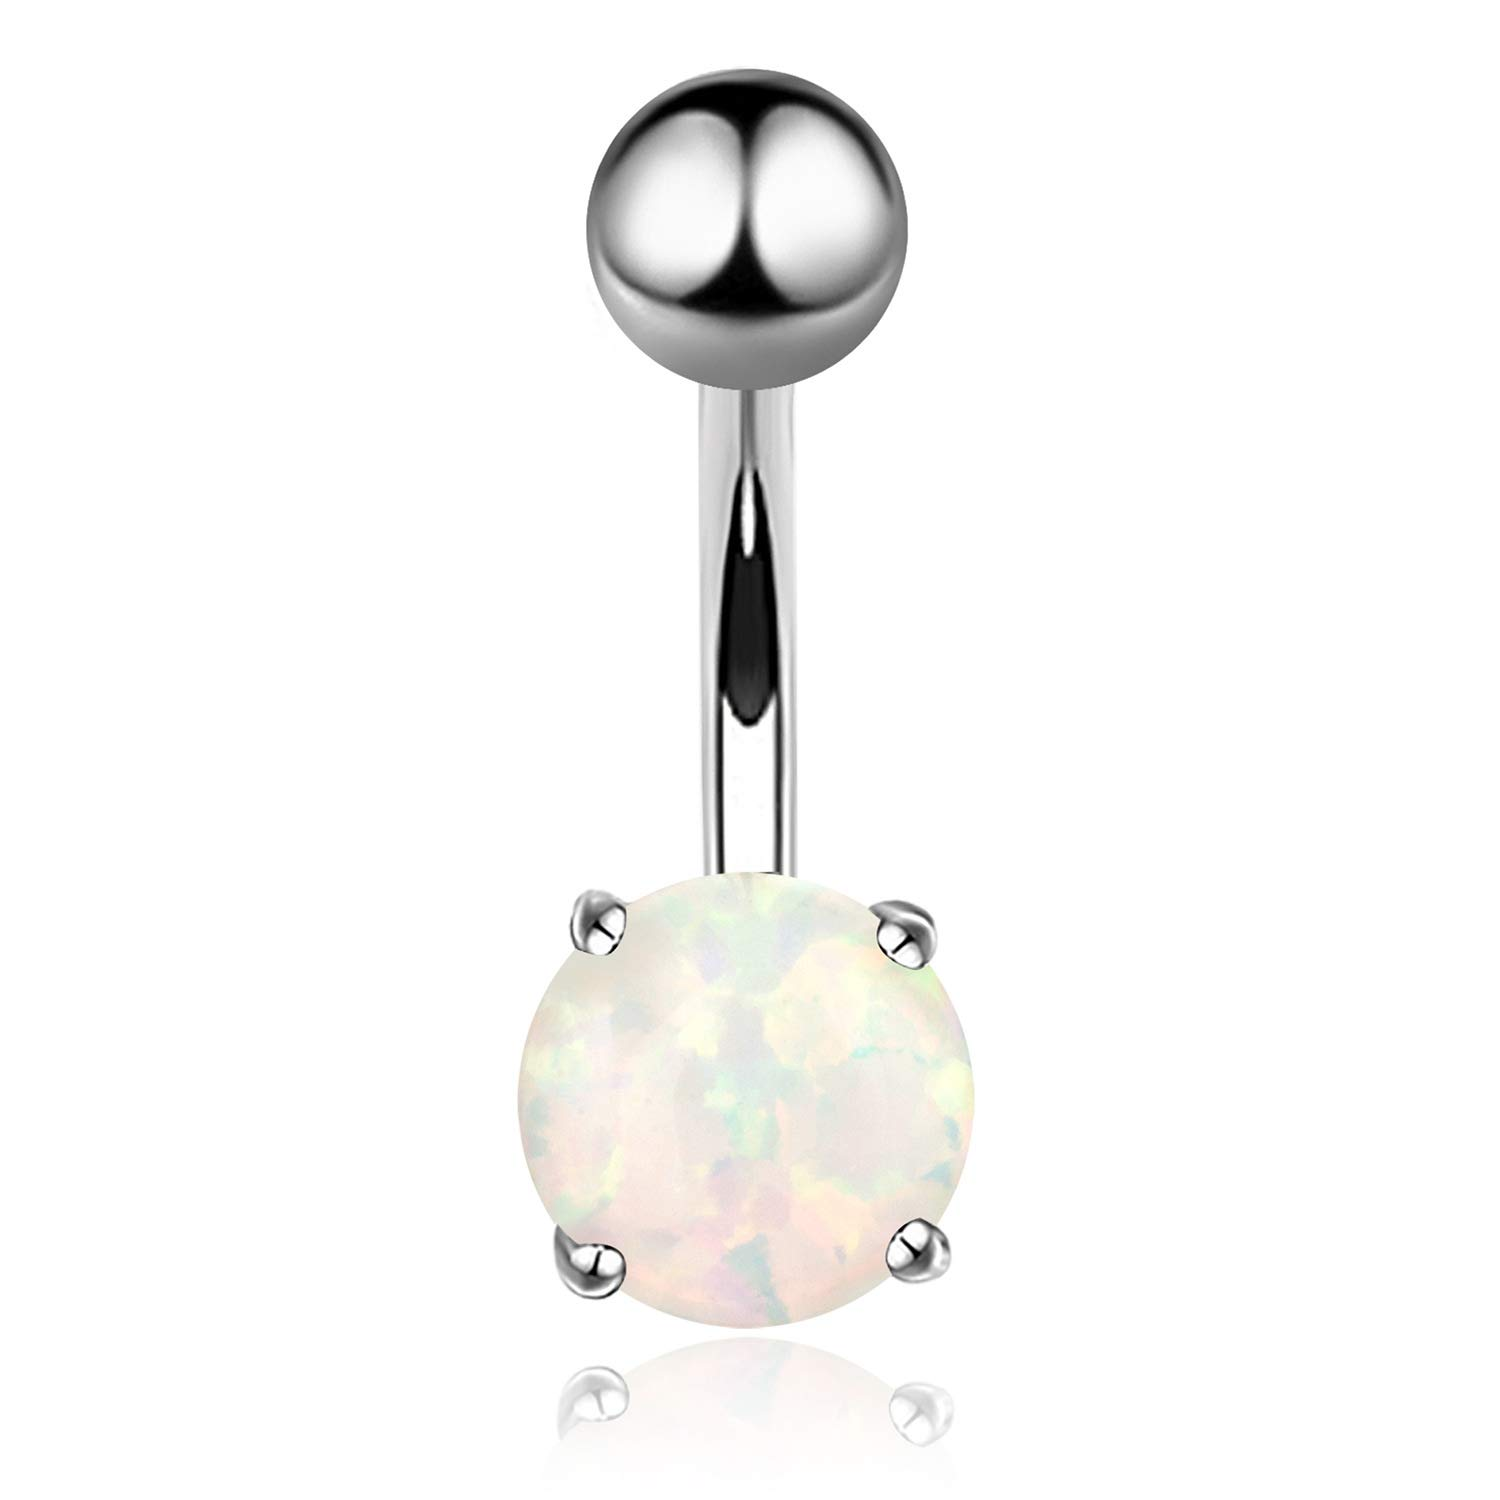 Silver kuyiuif 14G Opal Belly Button Ring Navel Barbell Rings 316L Surgical Steel Silver or Rose Gold Body Piercing Jewelry for Women Girls